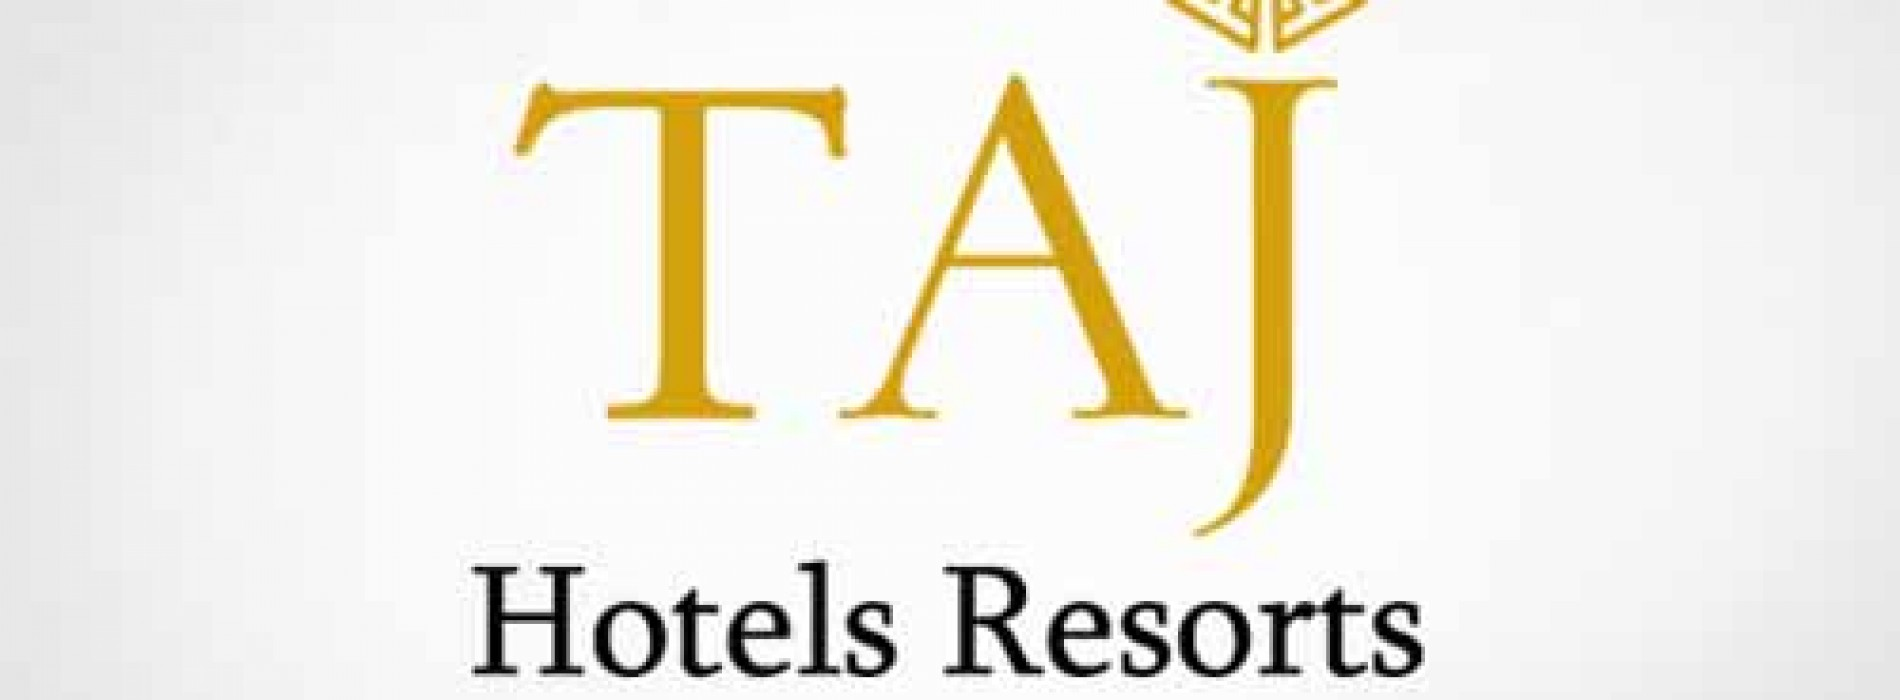 IHCL signs its fourth Taj Hotel in Dubai